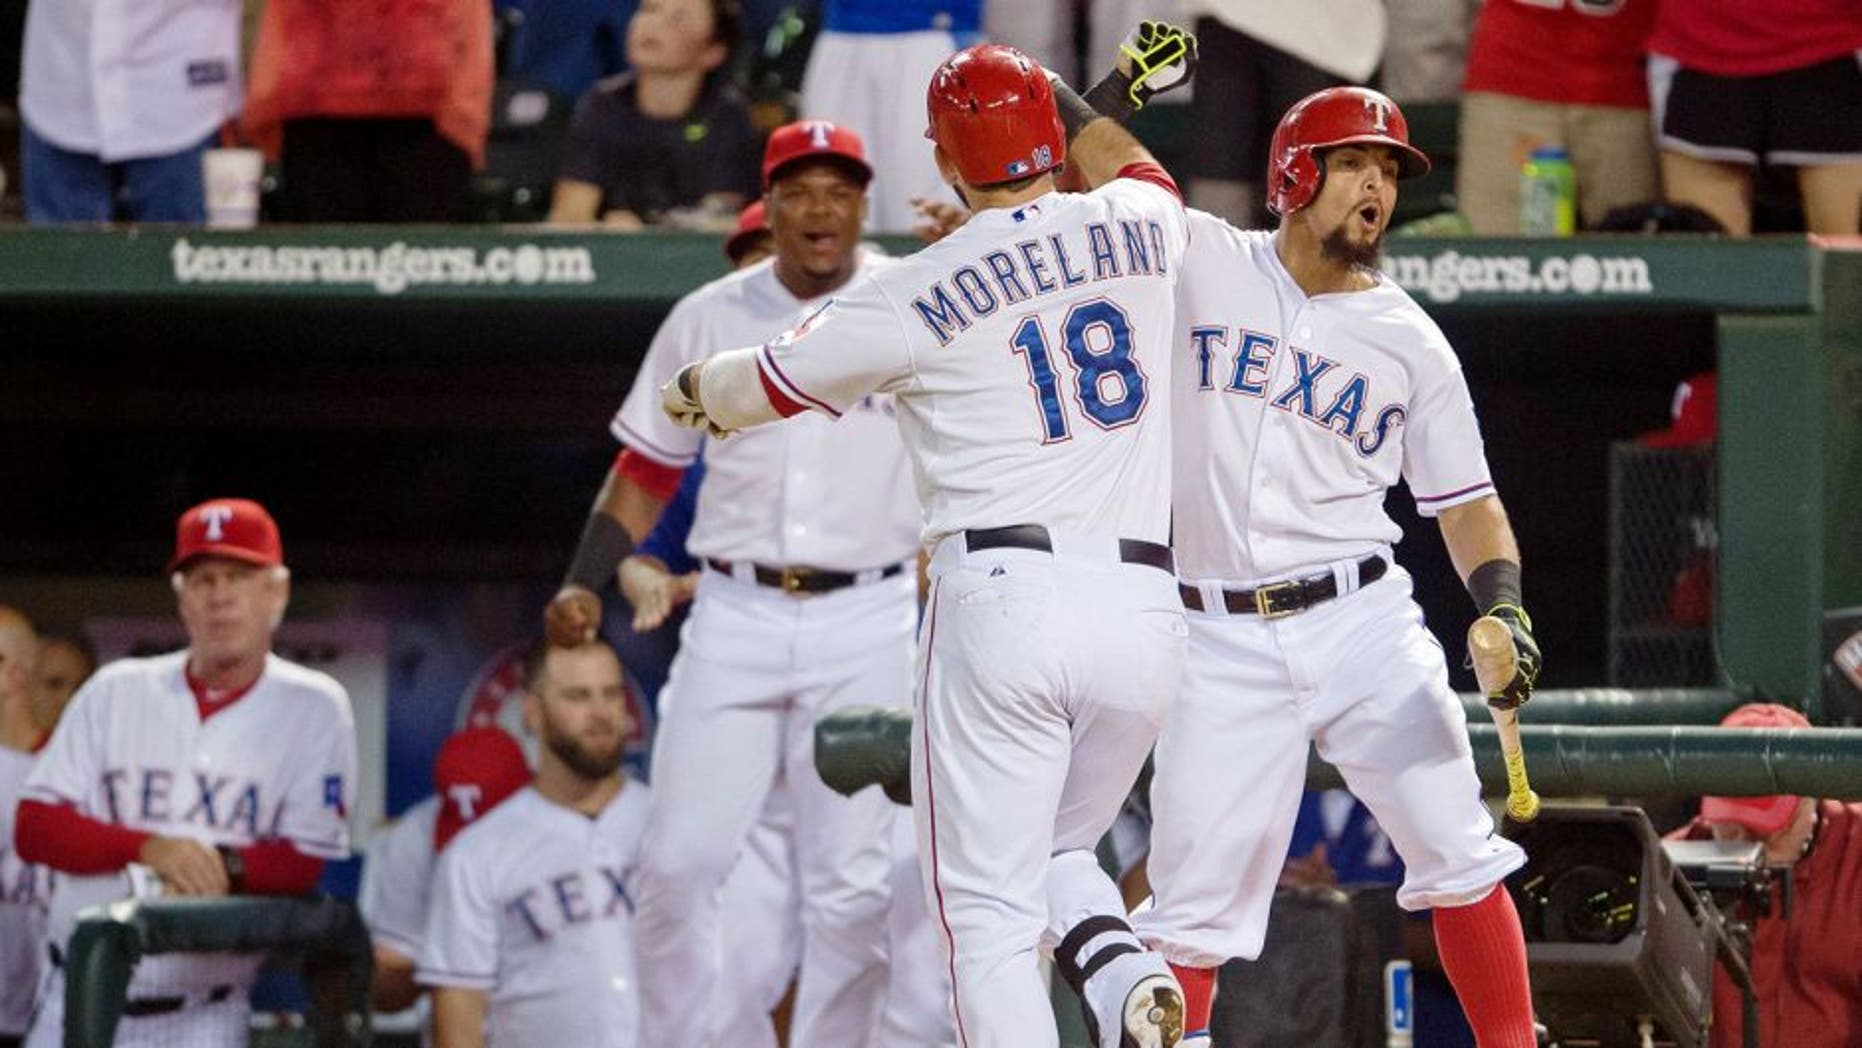 Sep 14, 2015; Arlington, TX, USA; Texas Rangers second baseman Rougned Odor (right) congratulates first baseman Mitch Moreland (18) for hitting a two run home run during the sixth inning against the Houston Astros at Globe Life Park in Arlington. Mandatory Credit: Jerome Miron-USA TODAY Sports